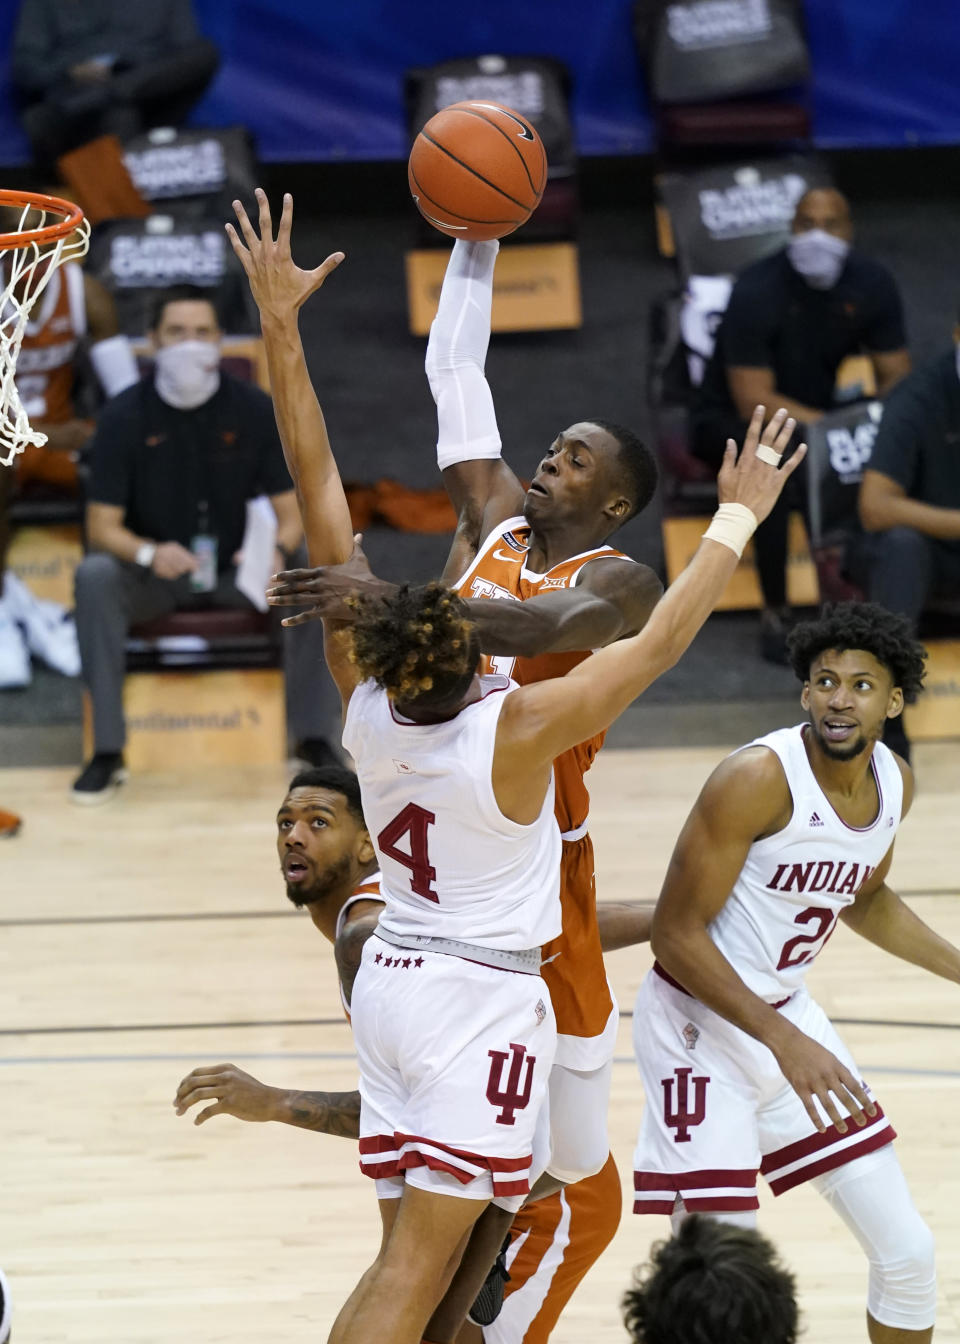 Texas guard Andrew Jones (1) leaps to the basket over Indiana guard Khristian Lander (4) and Indiana forward Jerome Hunter (21) in the second half of an NCAA college basketball game in the semifinals of the Maui Invitational tournament, Tuesday, Dec. 1, 2020, in Asheville, N.C. (AP Photo/Kathy Kmonicek)